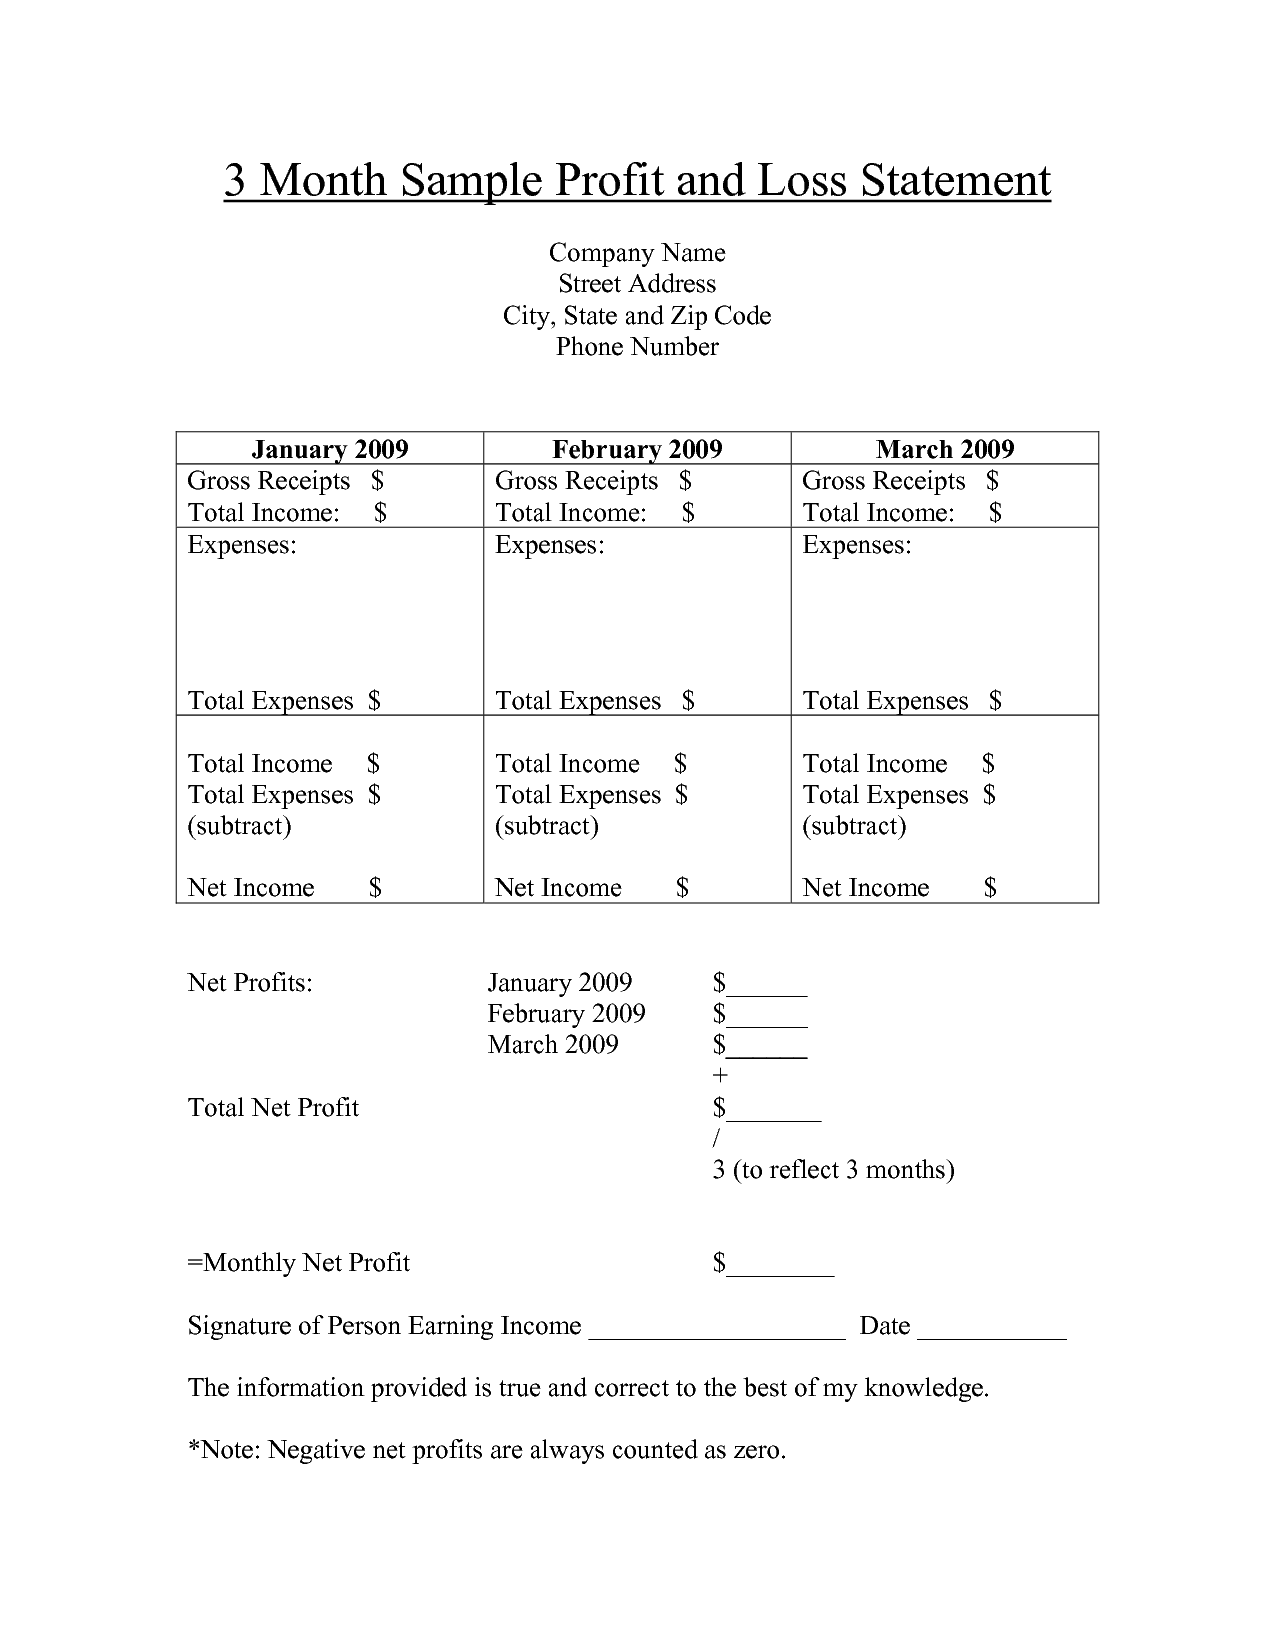 Free Printable Profit and Loss Statement Form for Home Care Bing – Simple Profit and Loss Statement Form